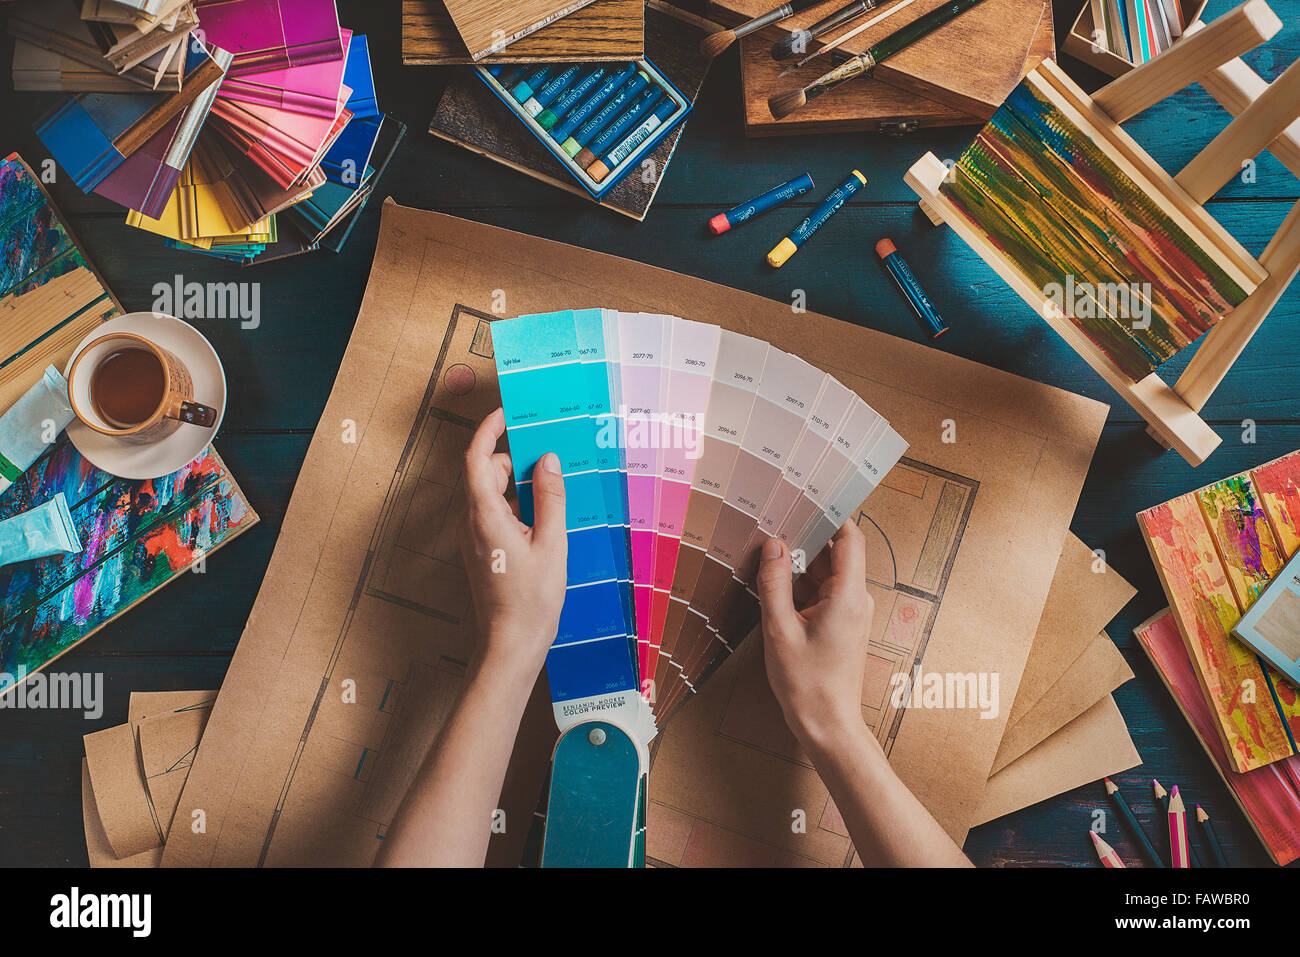 Designer workplace with creative tools and color swatches - Stock Image